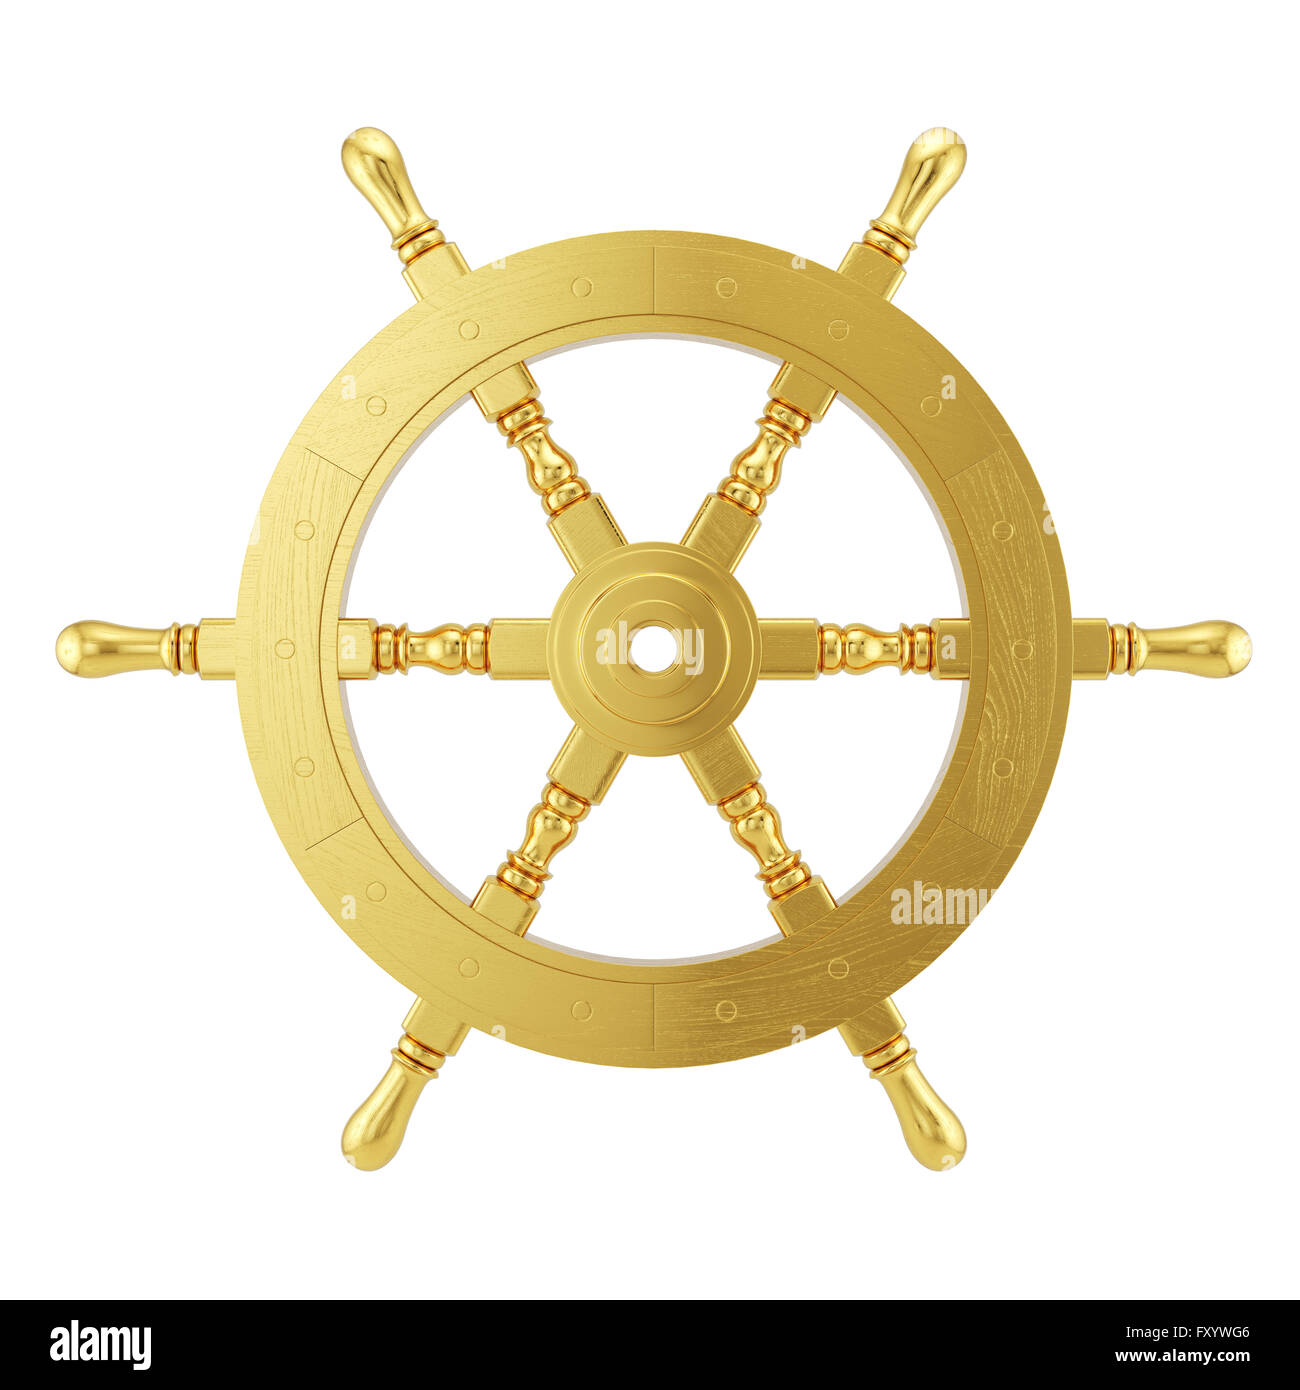 Ship Wheel Cut Out Stock Images & Pictures - Alamy